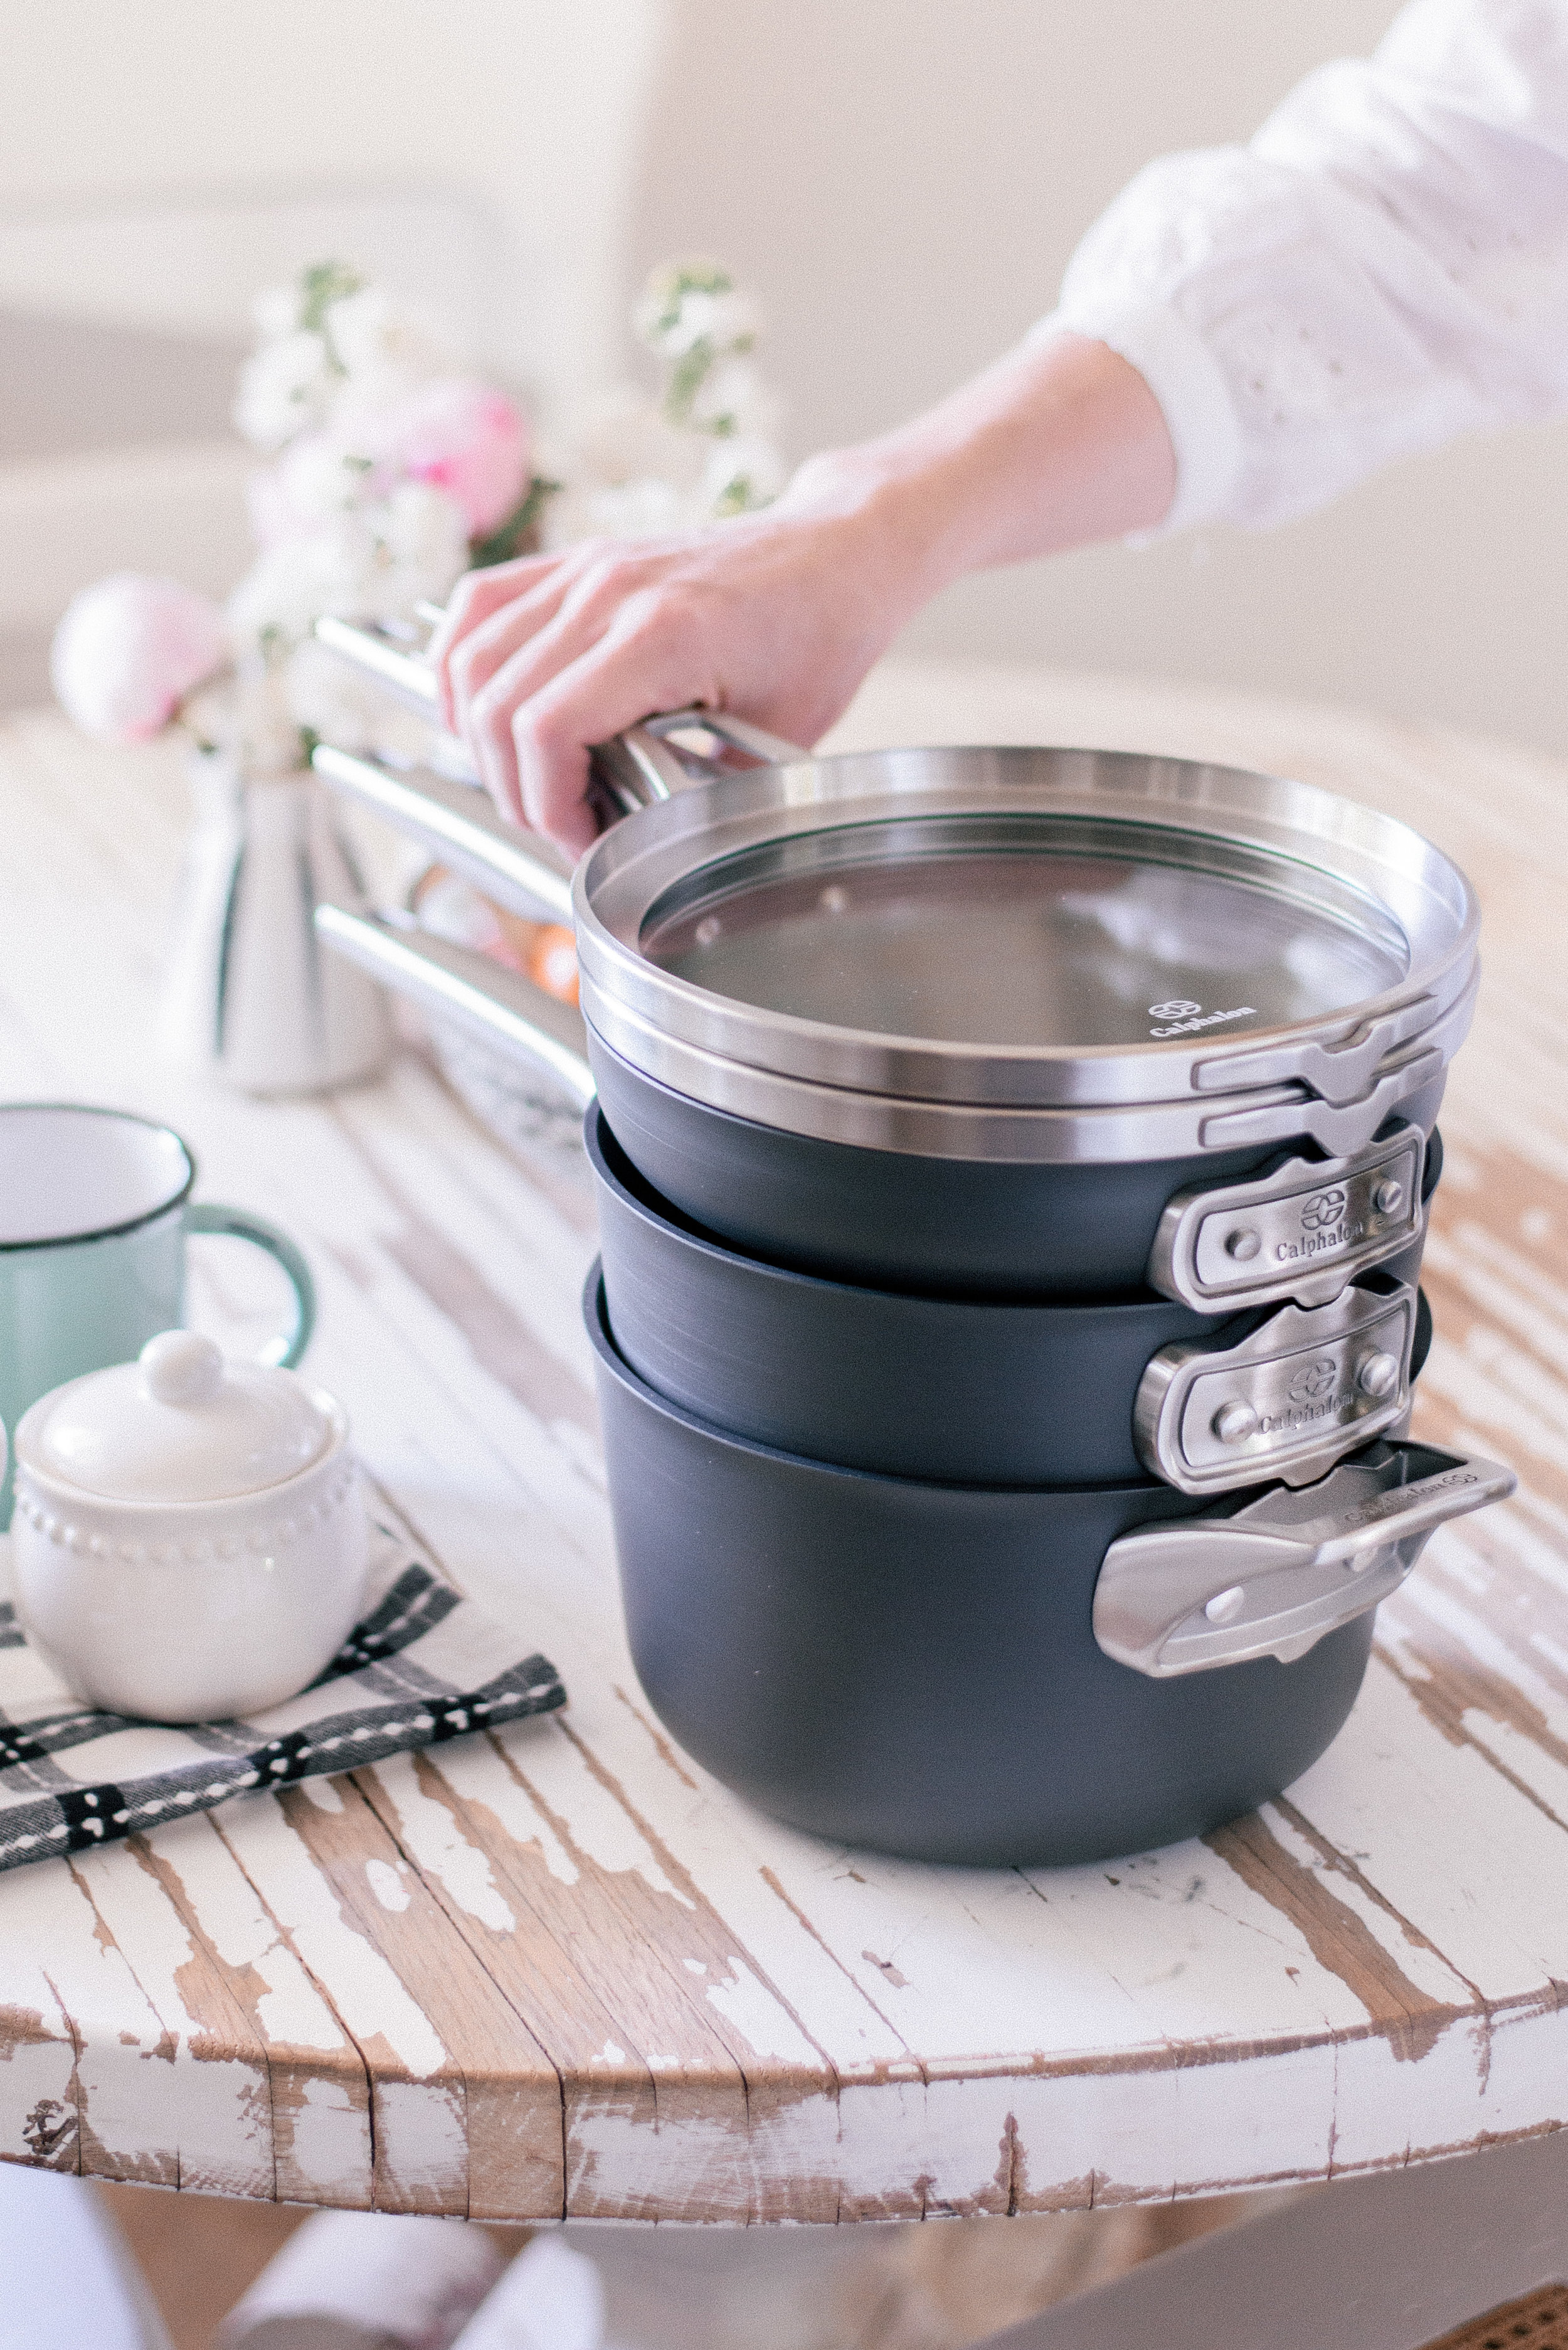 The Best Nonstick Cookware Sets with Calphalon and Bed Bath & Beyond featured by top U.S. Lifestyle blog Love + Specs: image of woman holding Calphalon pans in cottage kitchen stove